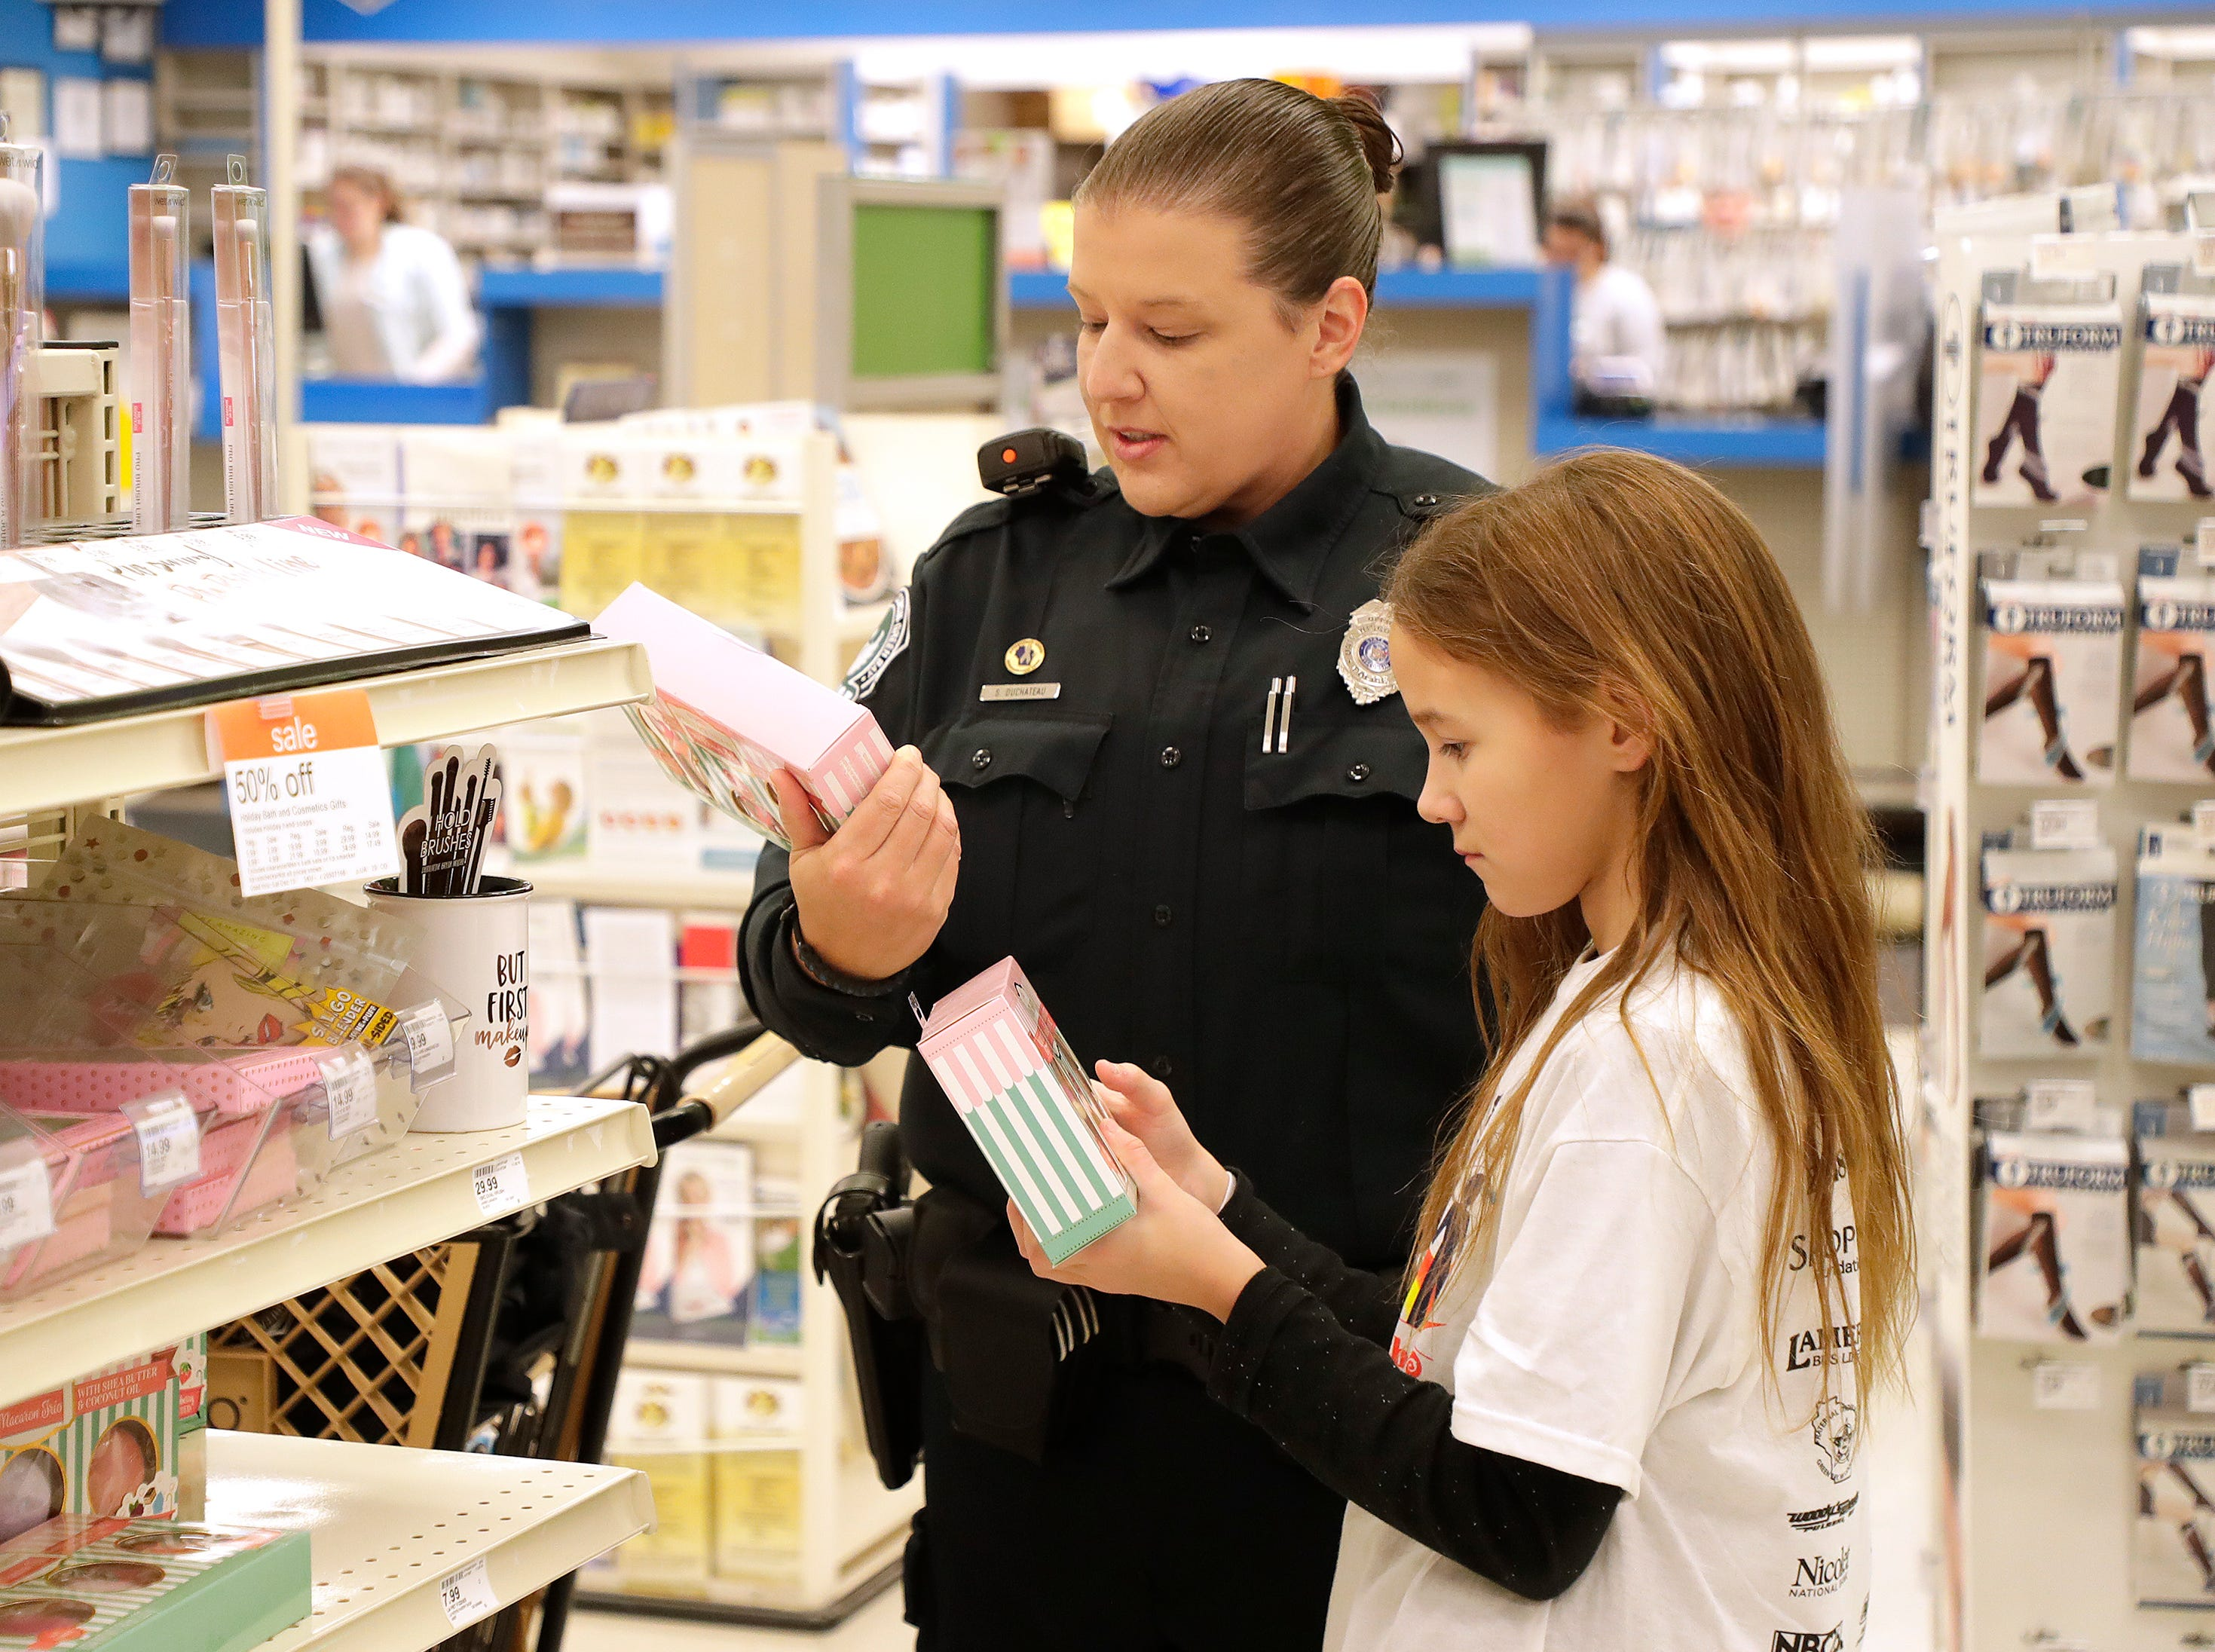 University of Wisconsin Green Bay Police Department Officer Sabrina Duchateau selects gifts with her Shop with A Cop program kid at Shopko on East Mason Street December 8, 2018 in Green Bay, Wis.